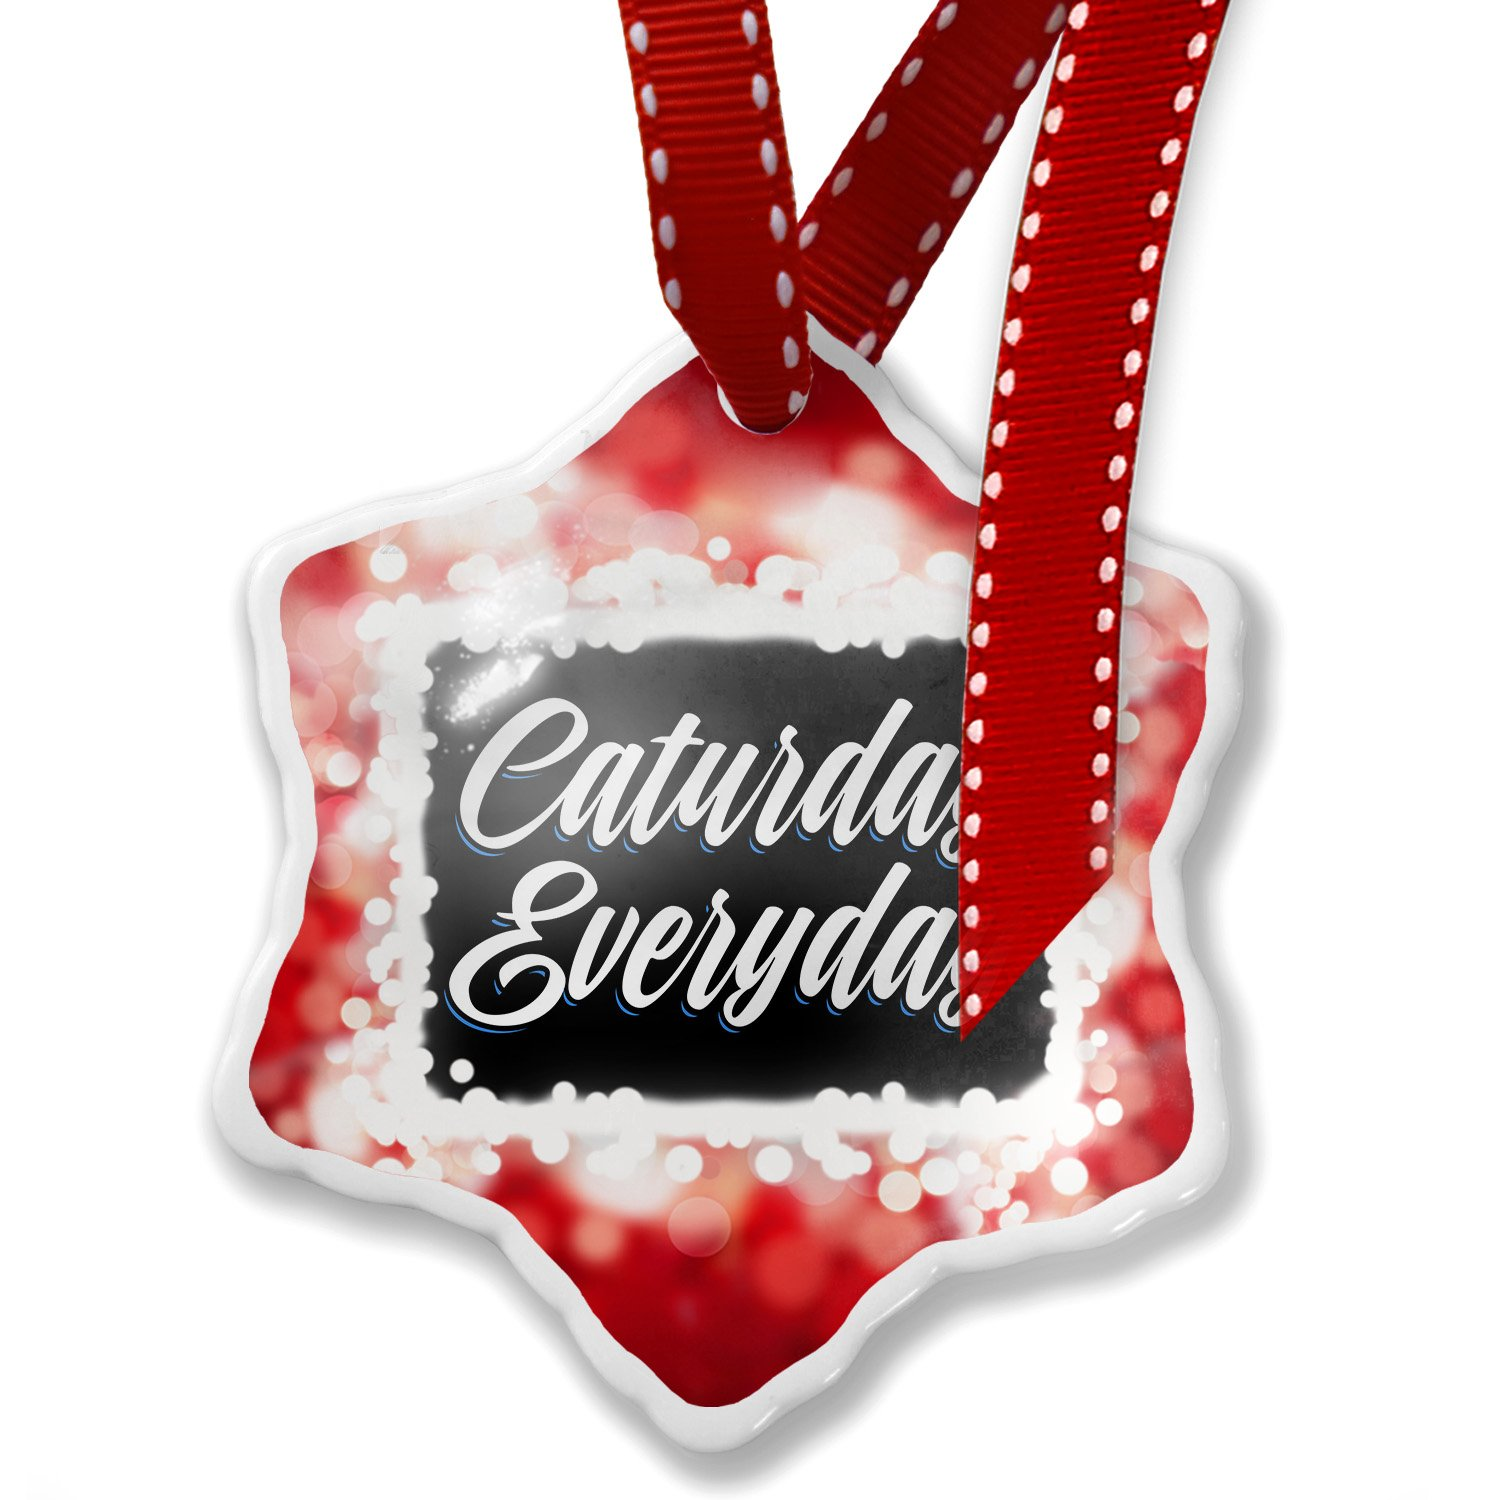 Christmas Ornament Classic design Caturday Everyday, red - Neonblond